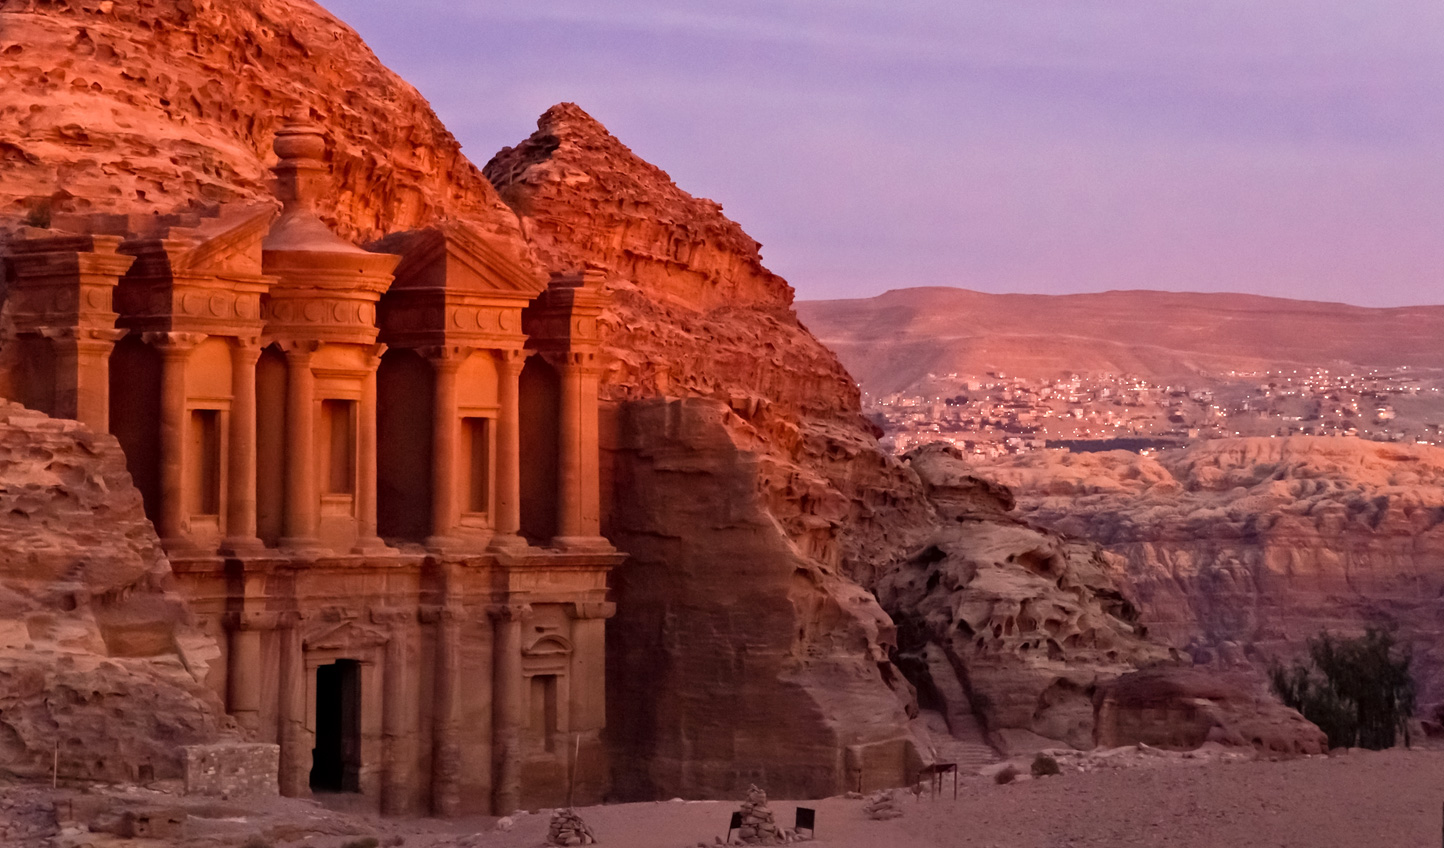 Marvel at the ancient city of Petra